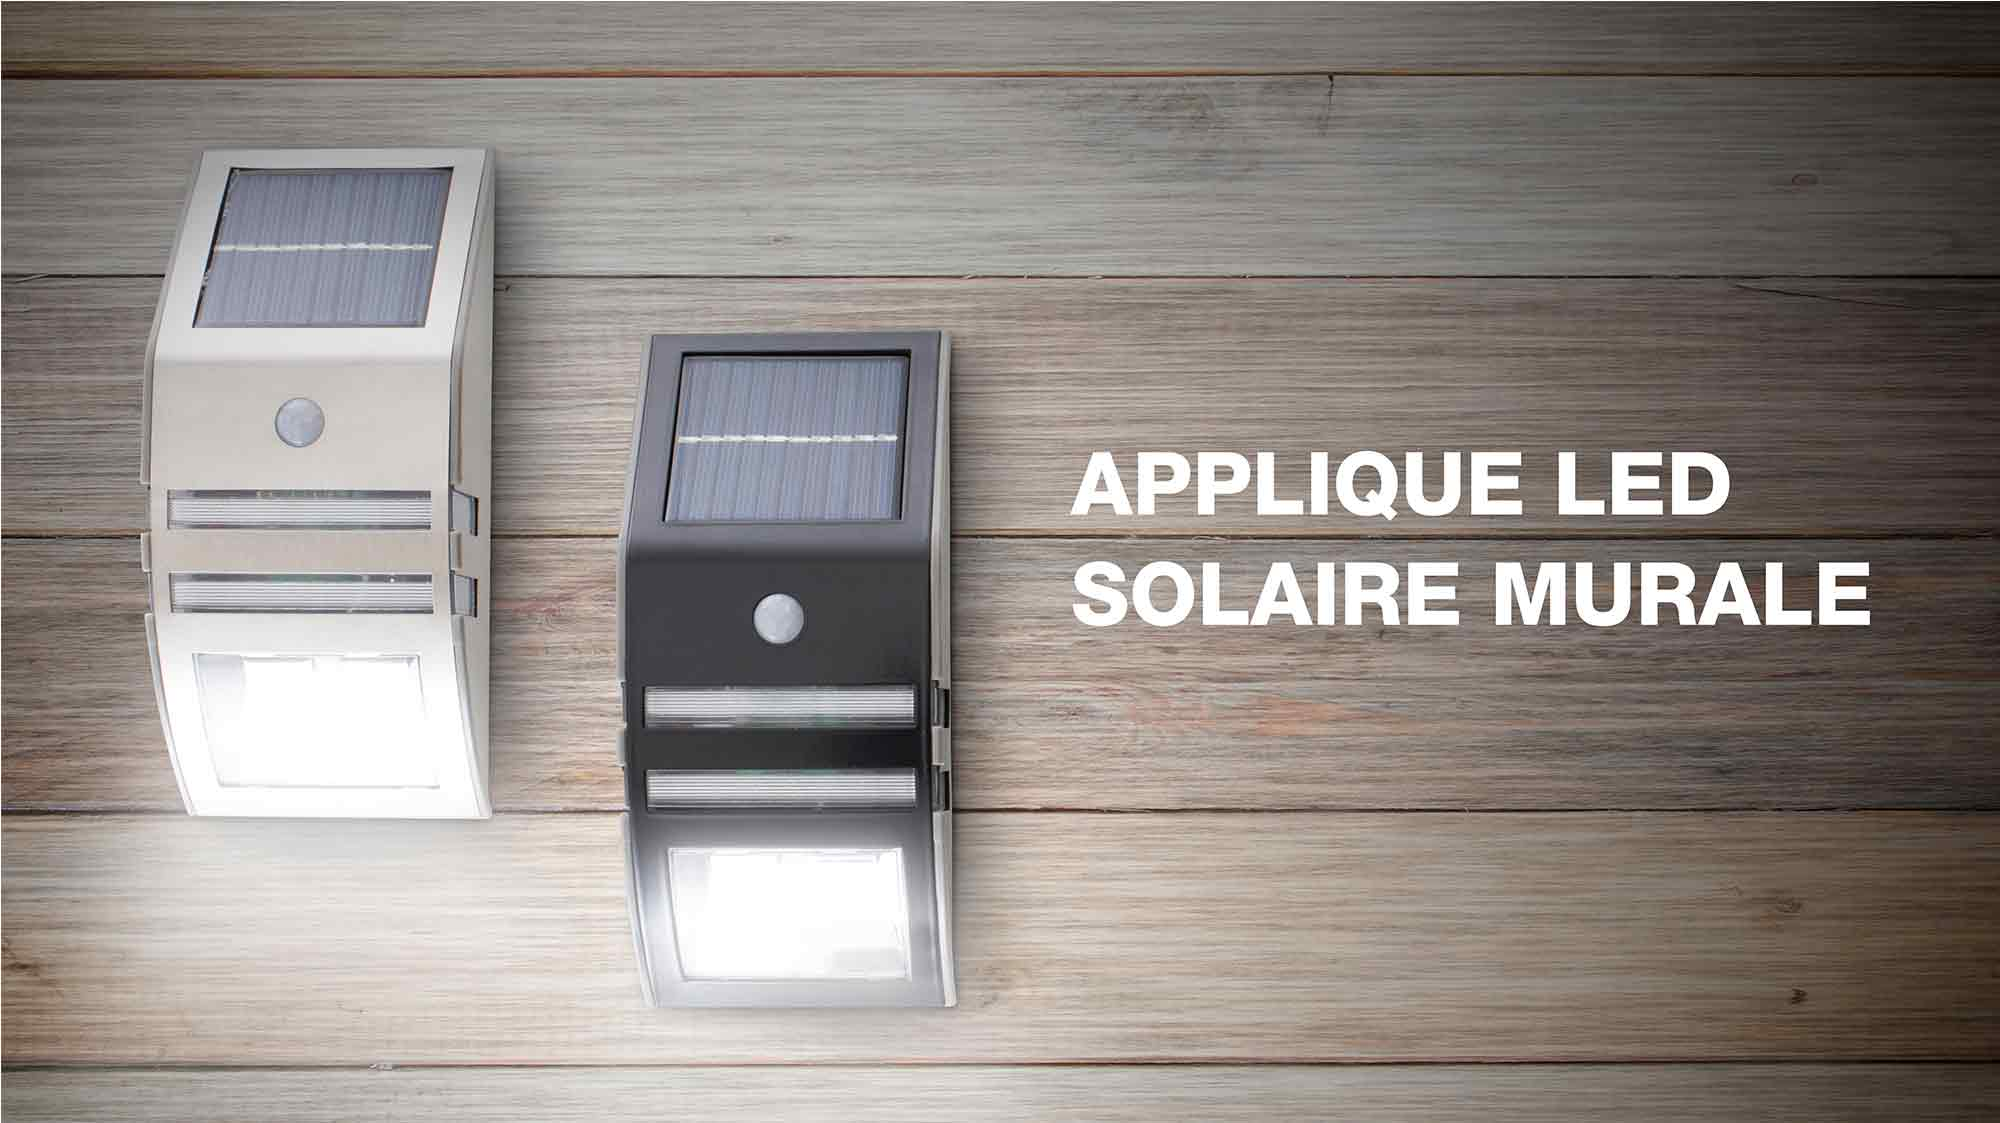 Solaire Applique Leds Mural Silver M2 Beesolar tQhsrCdx